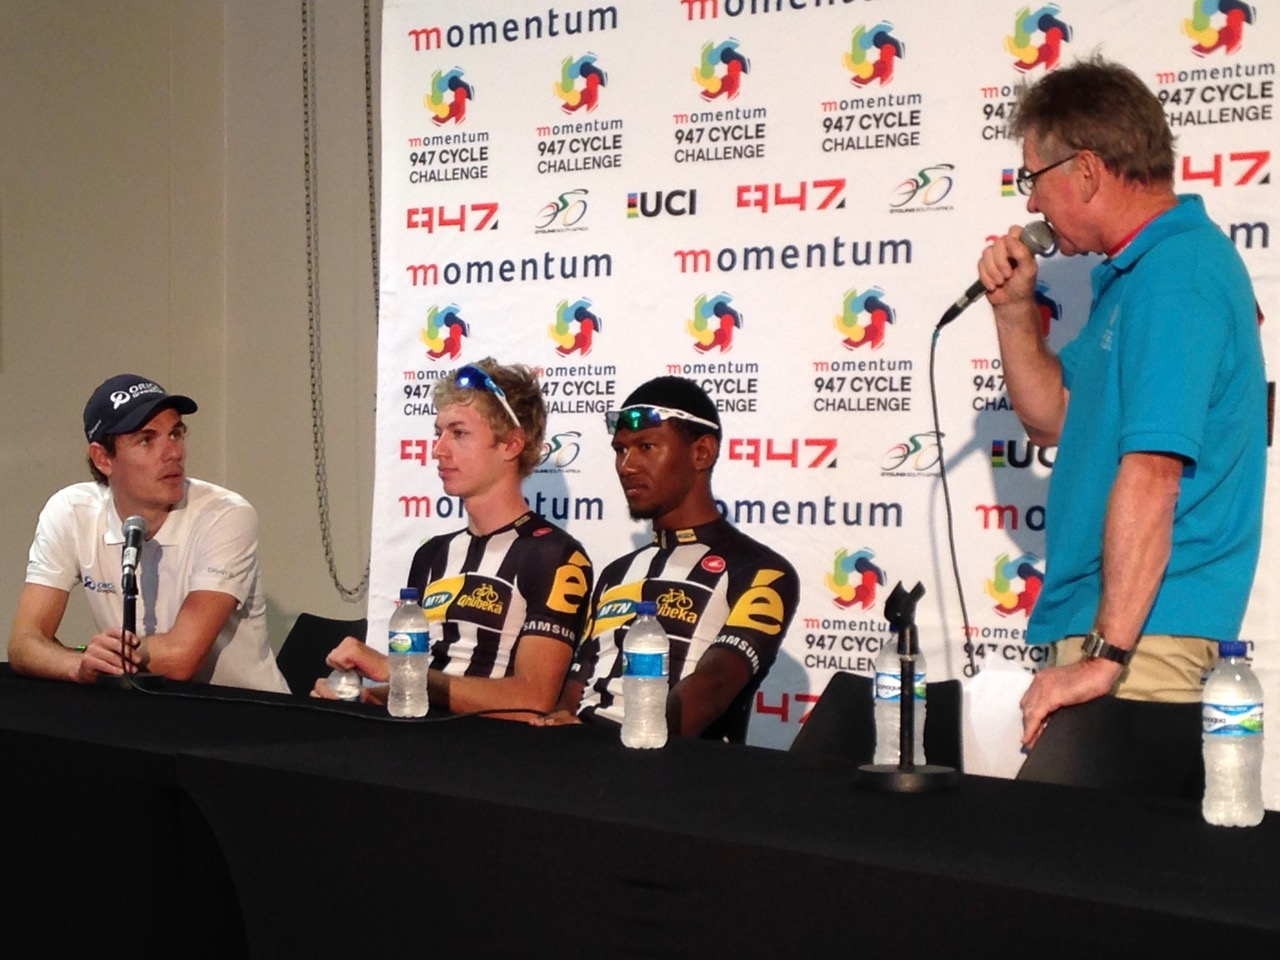 (From left) Orica-GreenEDGE's Daryl Impey, who came in at a well-fought third place, chats with MTN-Qhubeka Feeder Team's Stefan de Bod (first) and Clint Hendriks (second) to MC Paul Valstar after the 2015 Momentum 947 Cycle Challenge Elite Men's race in Gauteng on Sunday 15 November. Photo: Supplied